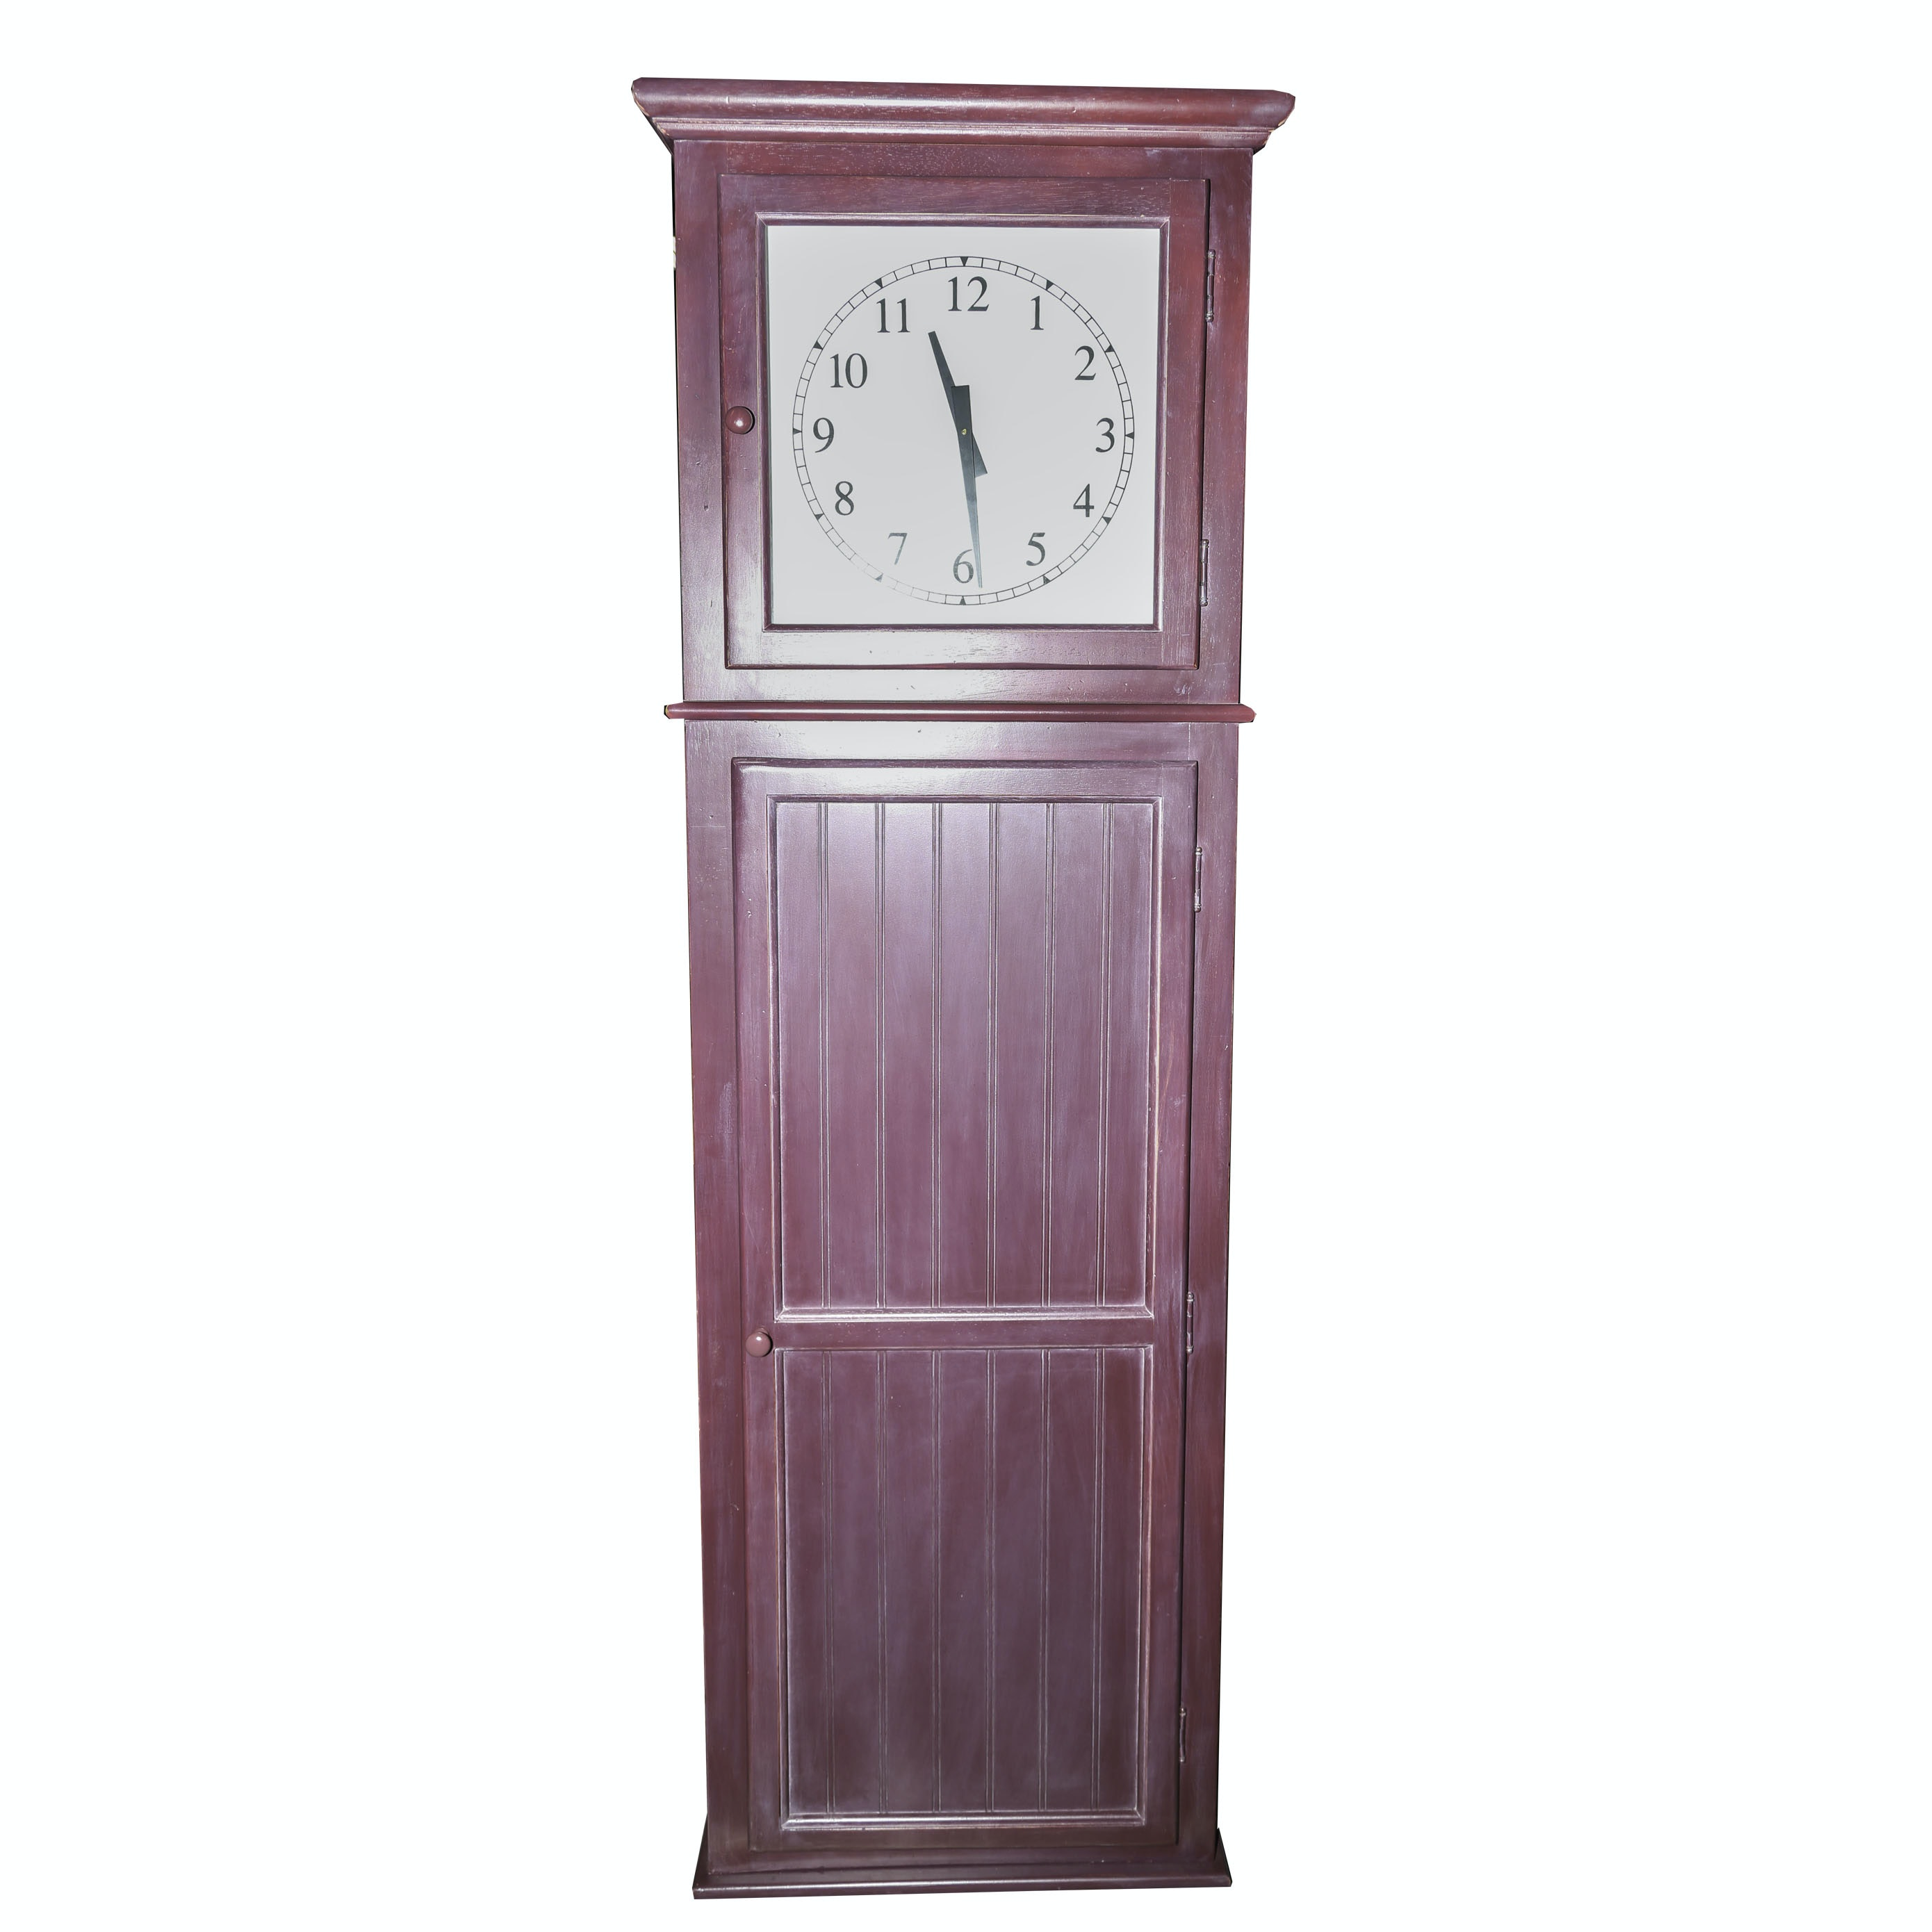 Primitive Style Grandfather Clock with Concealed Bar